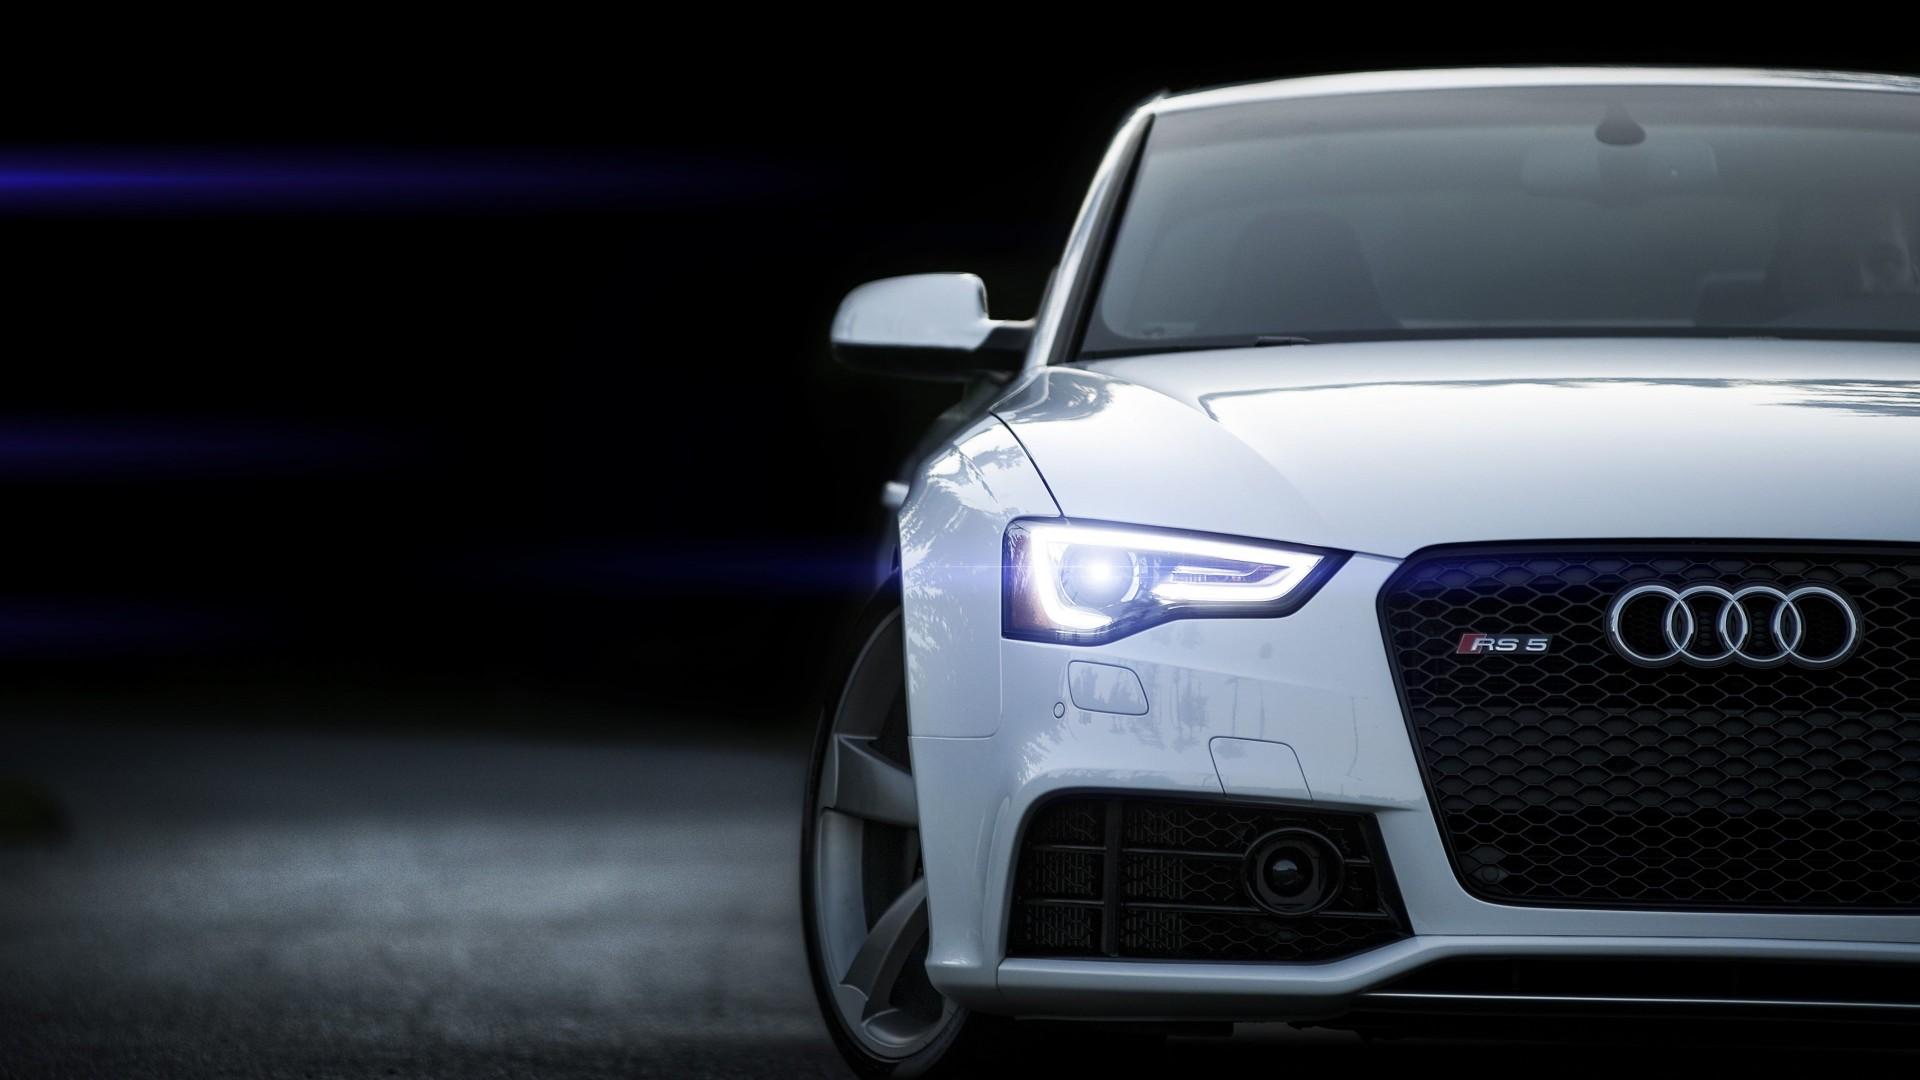 2015 Audi RS 5 Coupe Wallpaper for Desktop 1920x1080